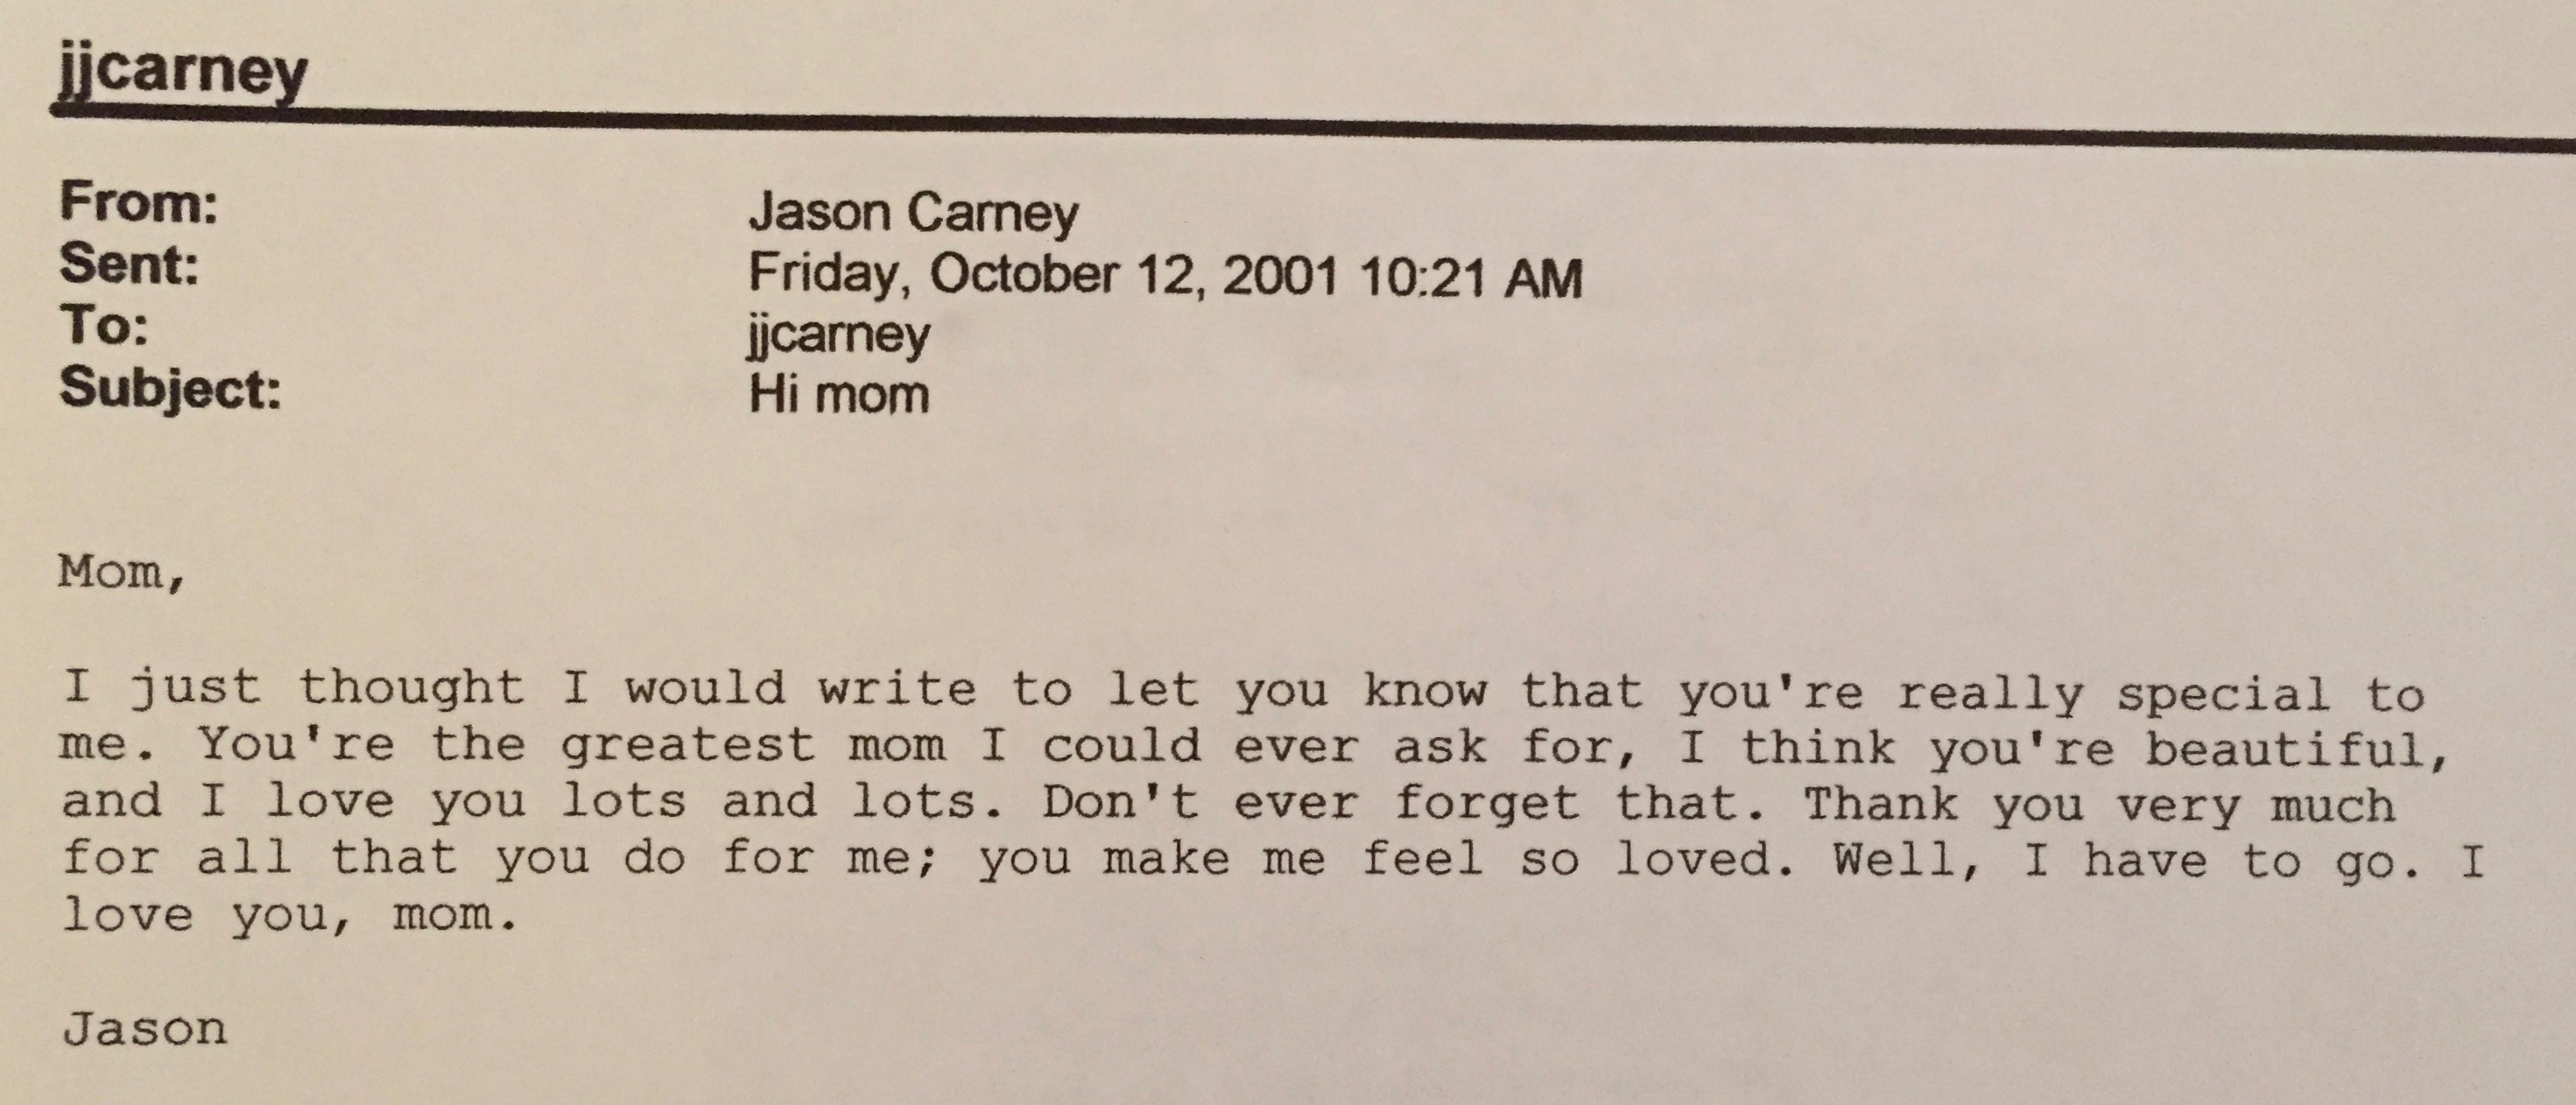 Email from Jason